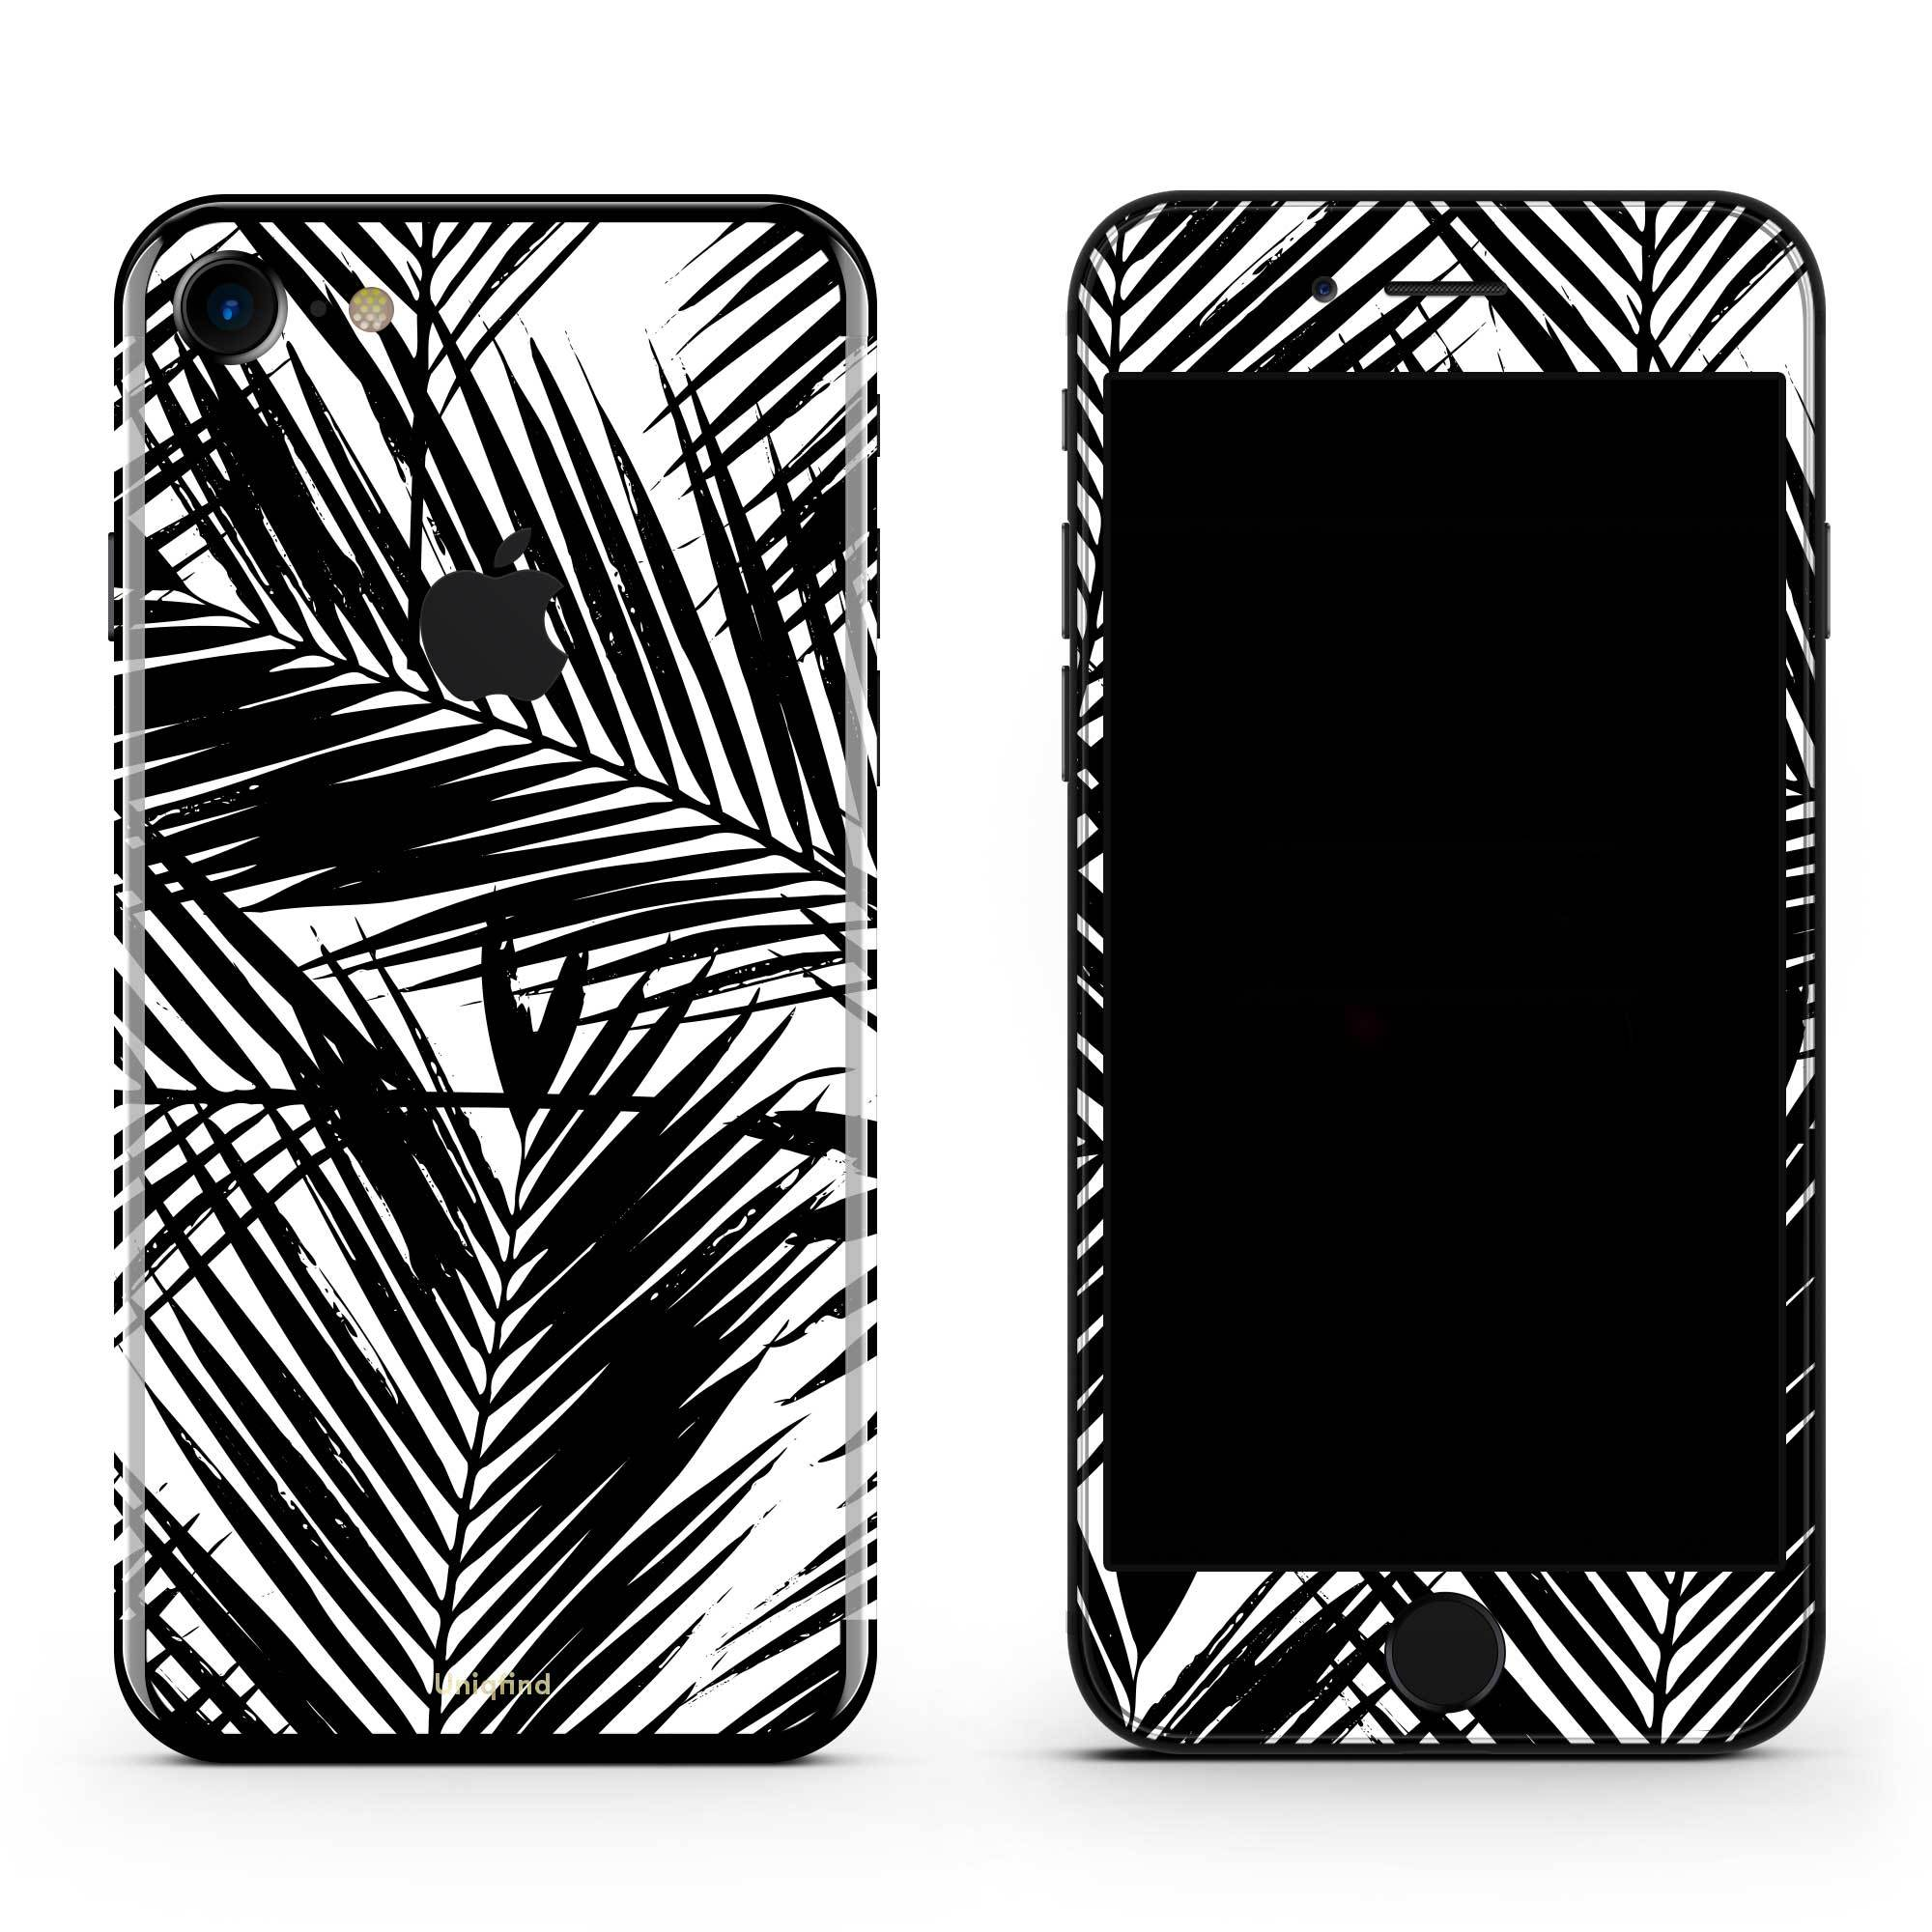 Palm Beach iPhone 7 Skin + Case